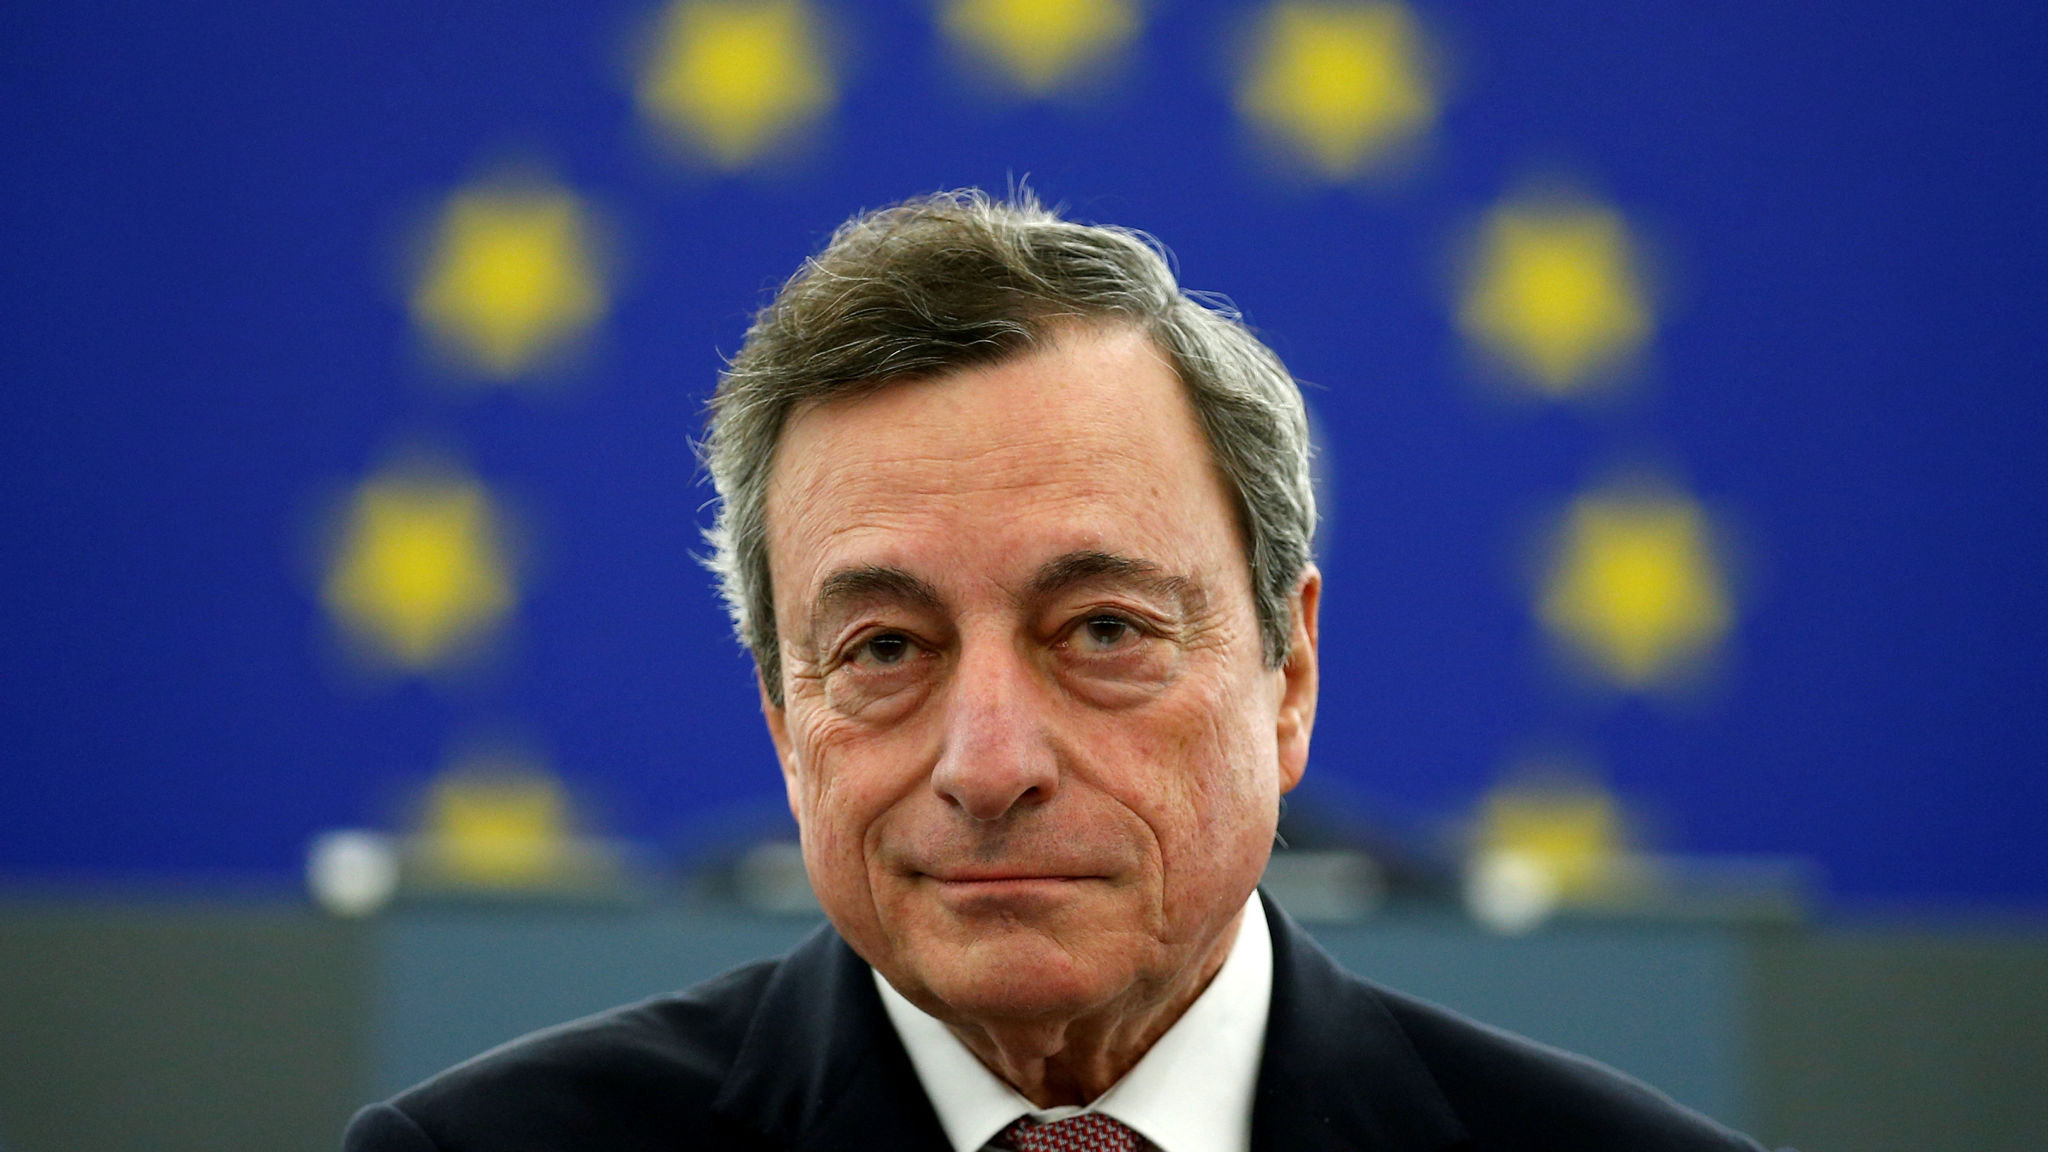 ECB should build links with national capitals to combat meddling